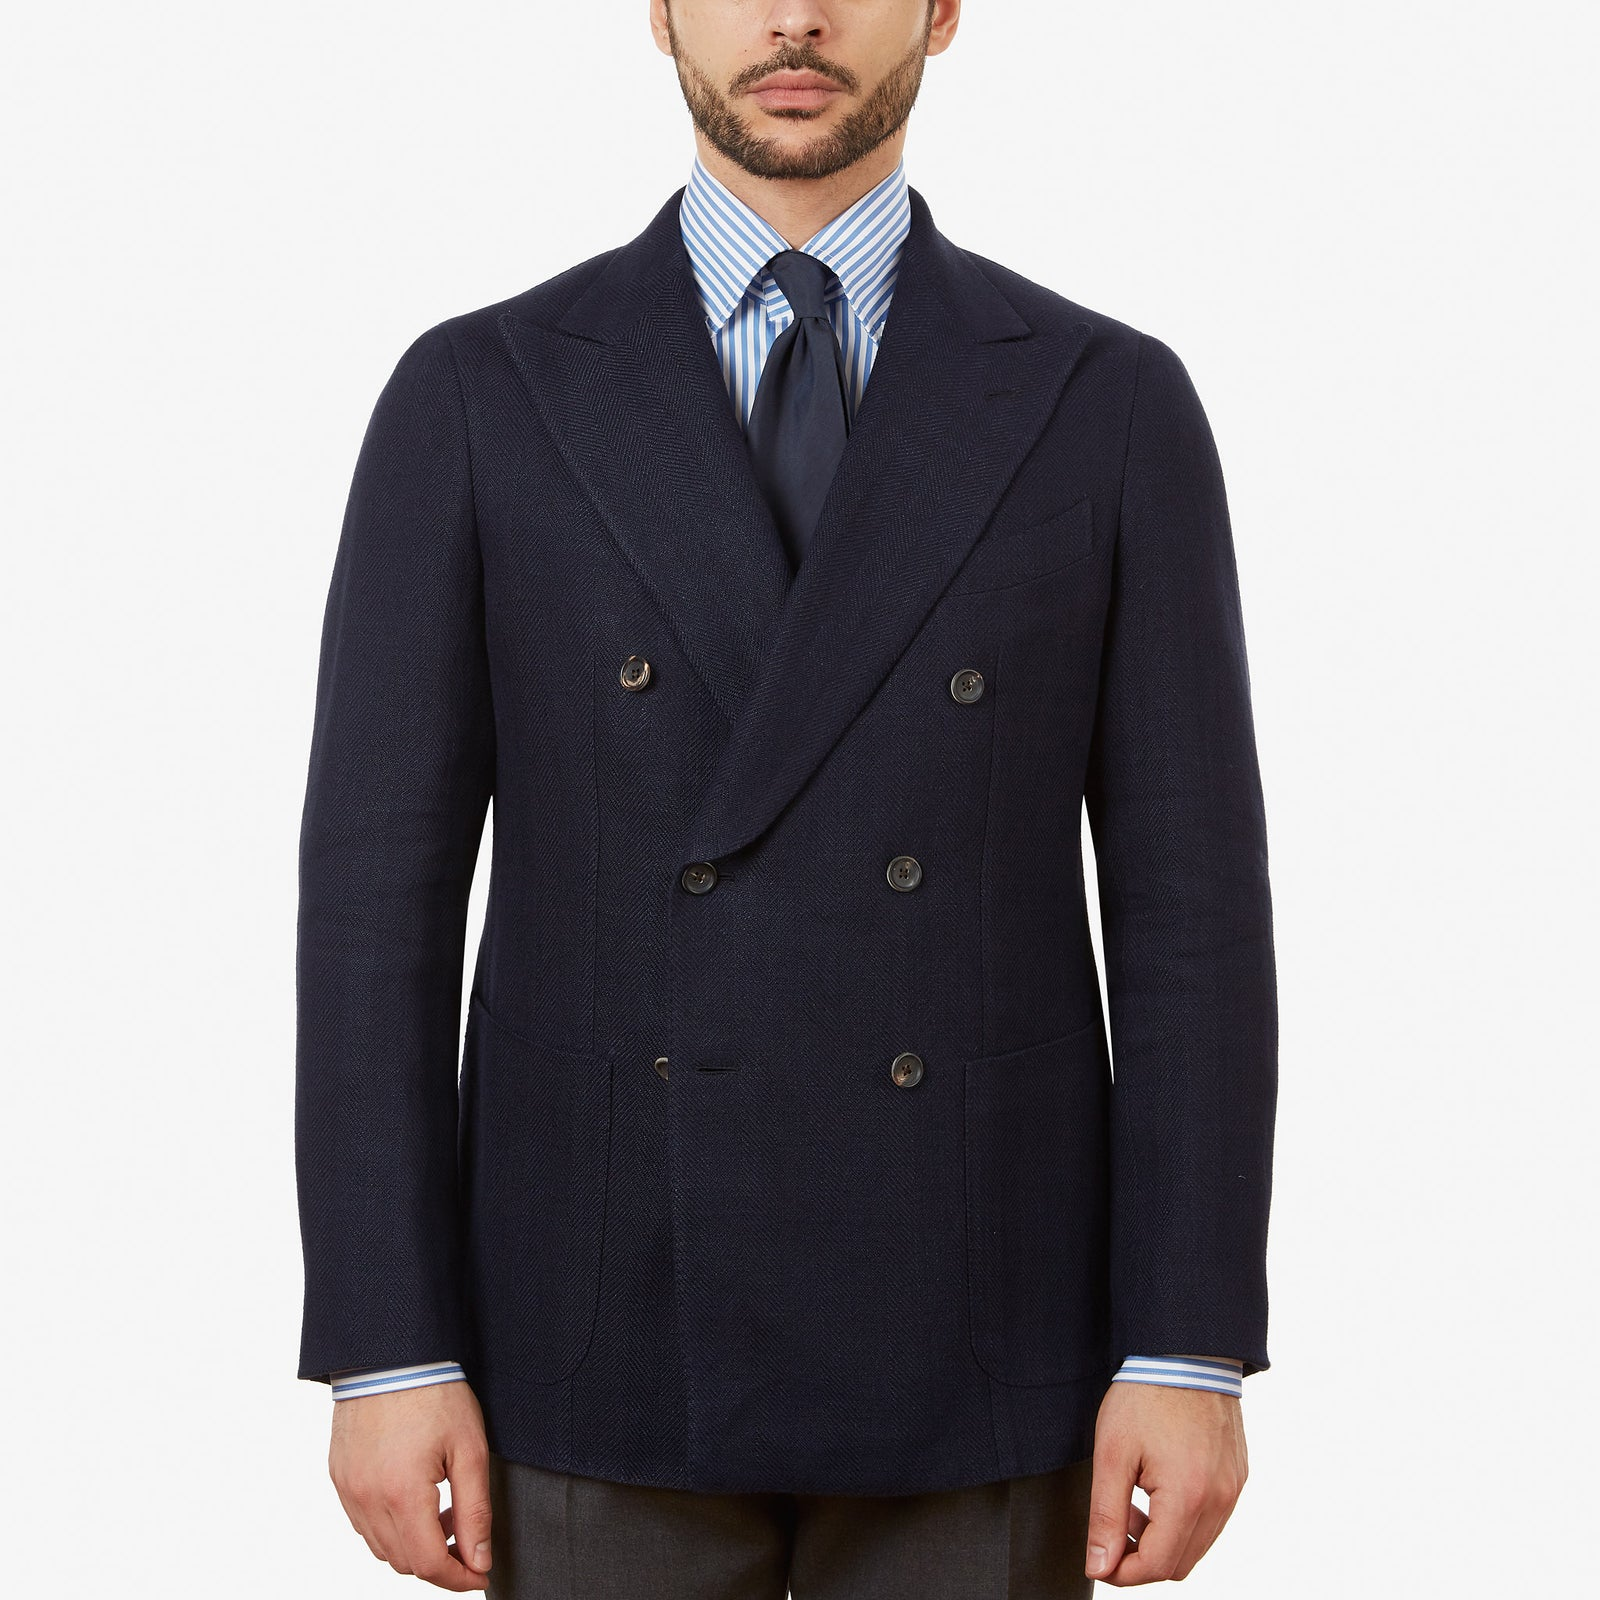 Sport Jacket Linen Double Breasted Navy Herringbone